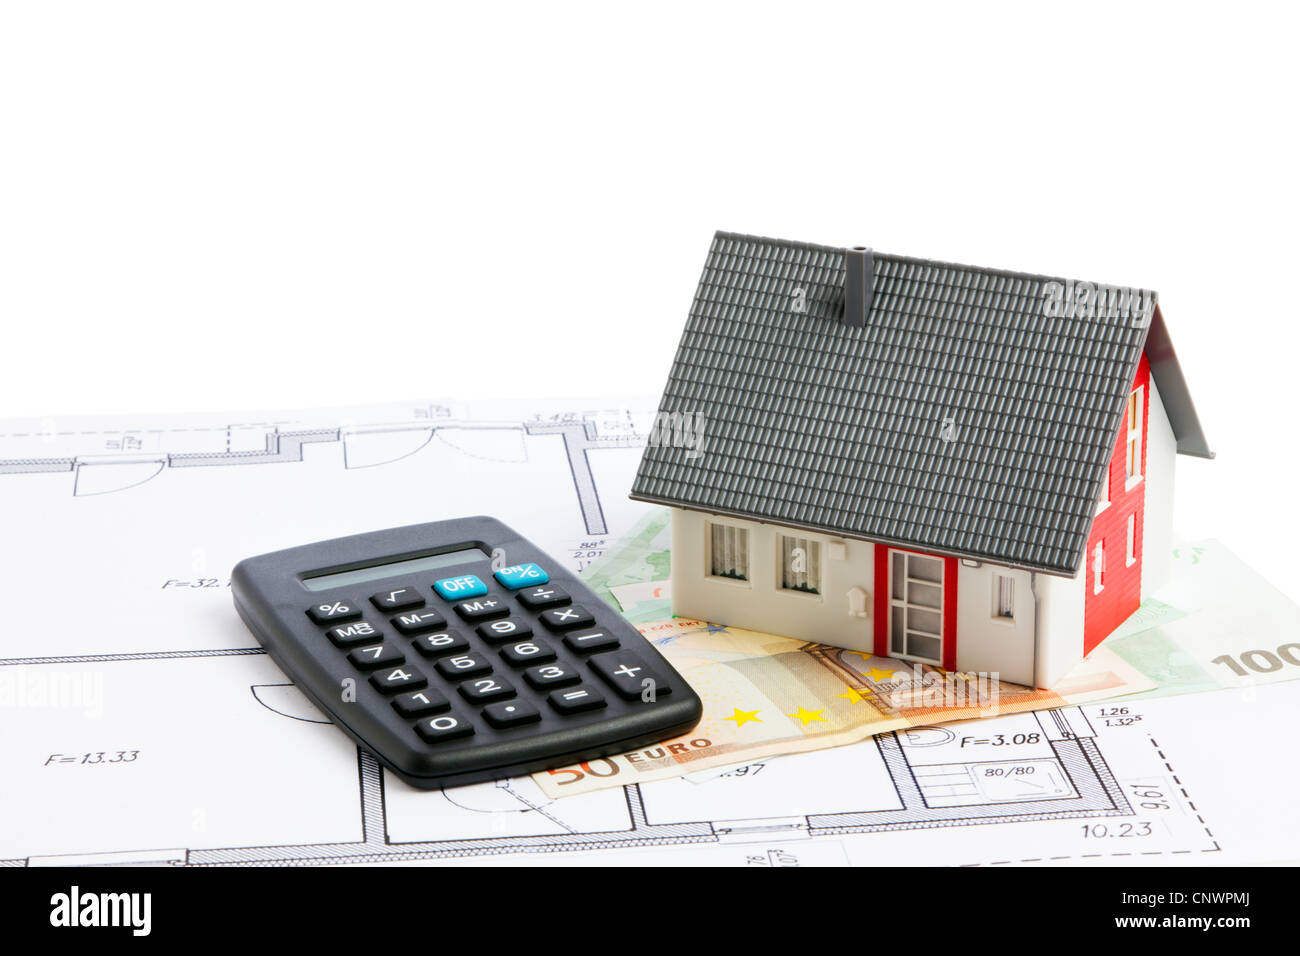 Model of a small house, calculator, money and blueprint - Stock Image